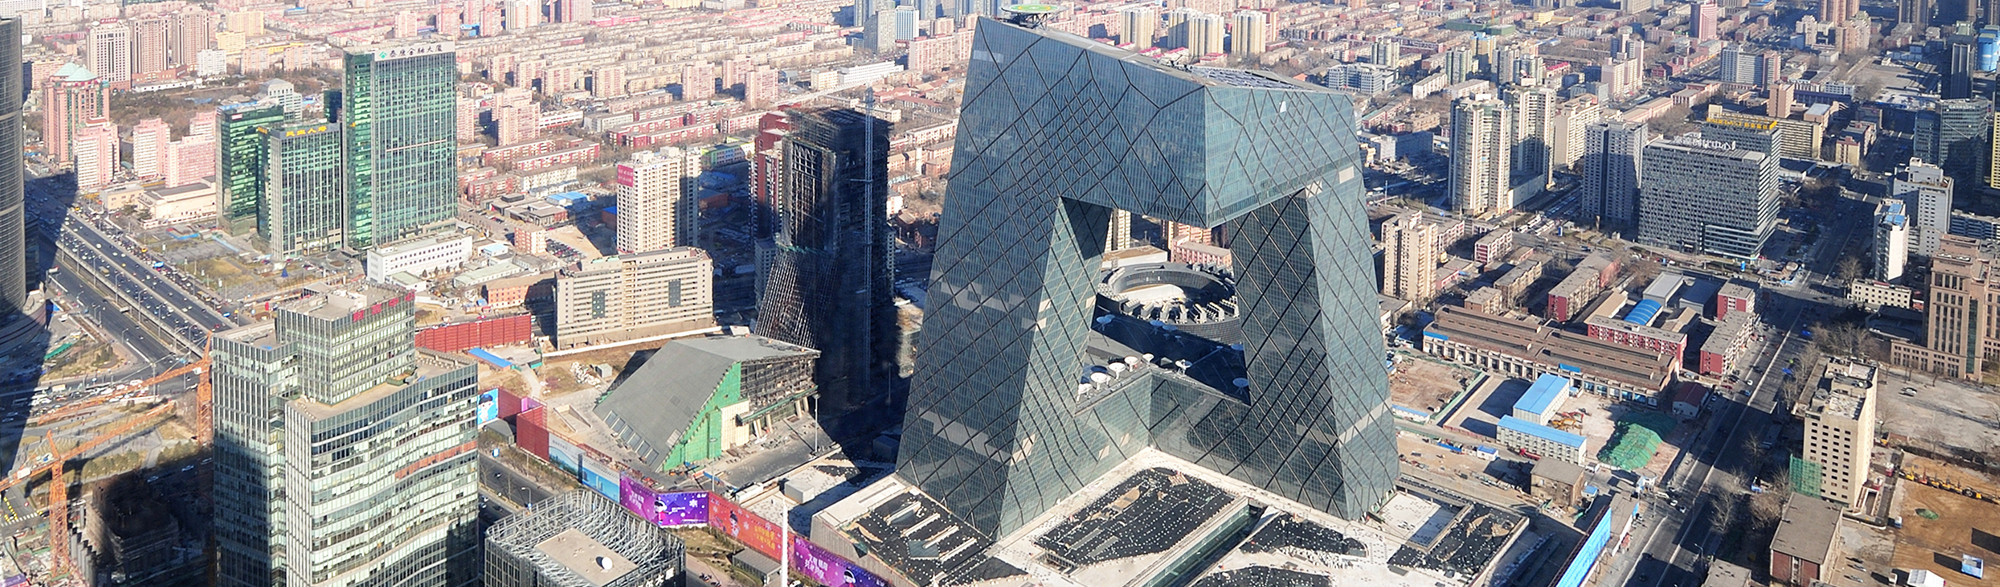 Beijing CCTV Tower in China | Post Tensioning System | PT